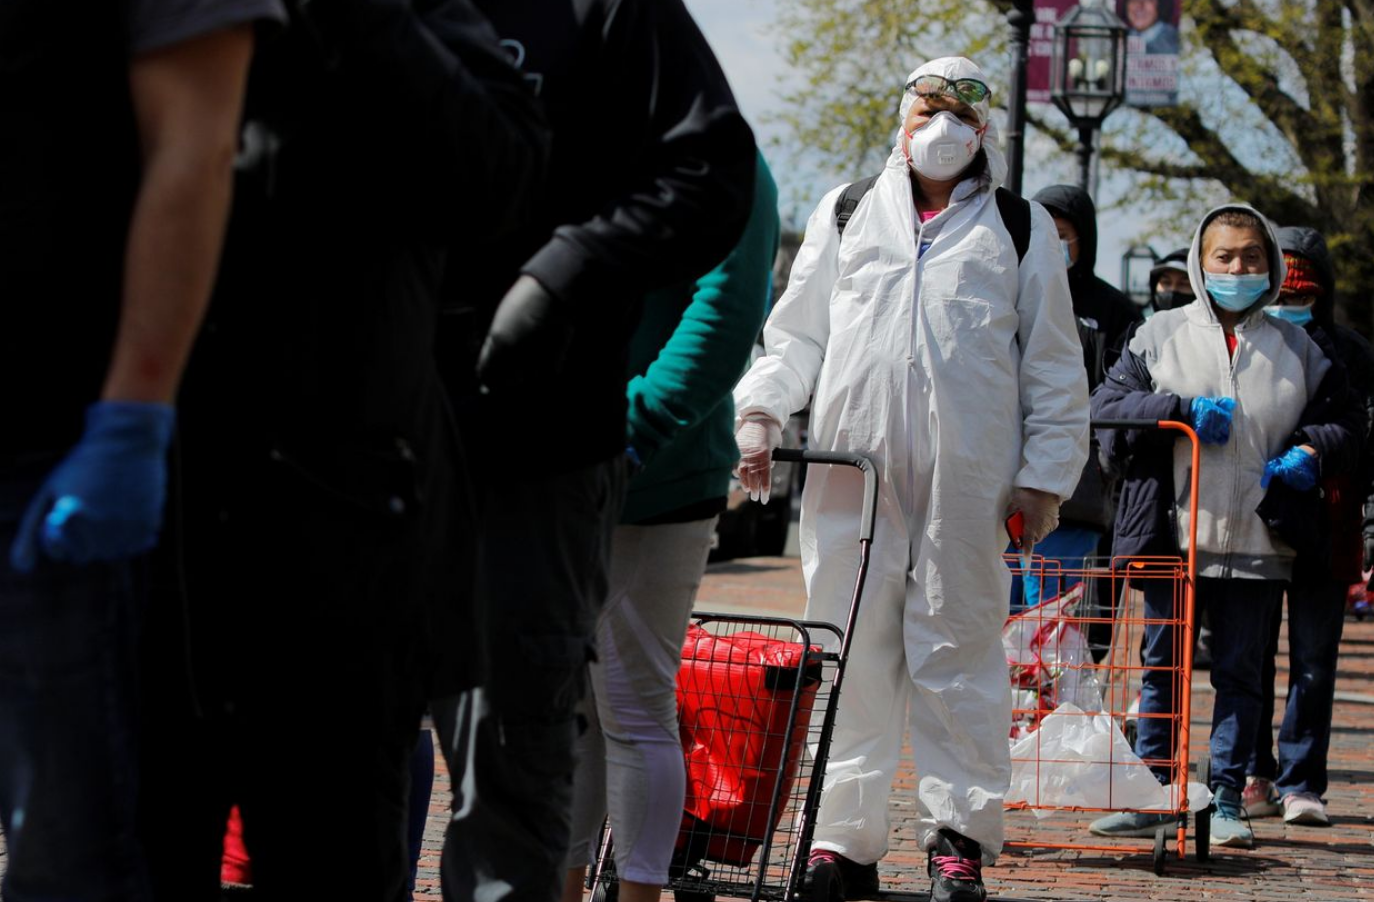 Protests In U.S. To Coronavirus Restrictions Could Be Catalyst For Economic Change (#GotBitcoin?)